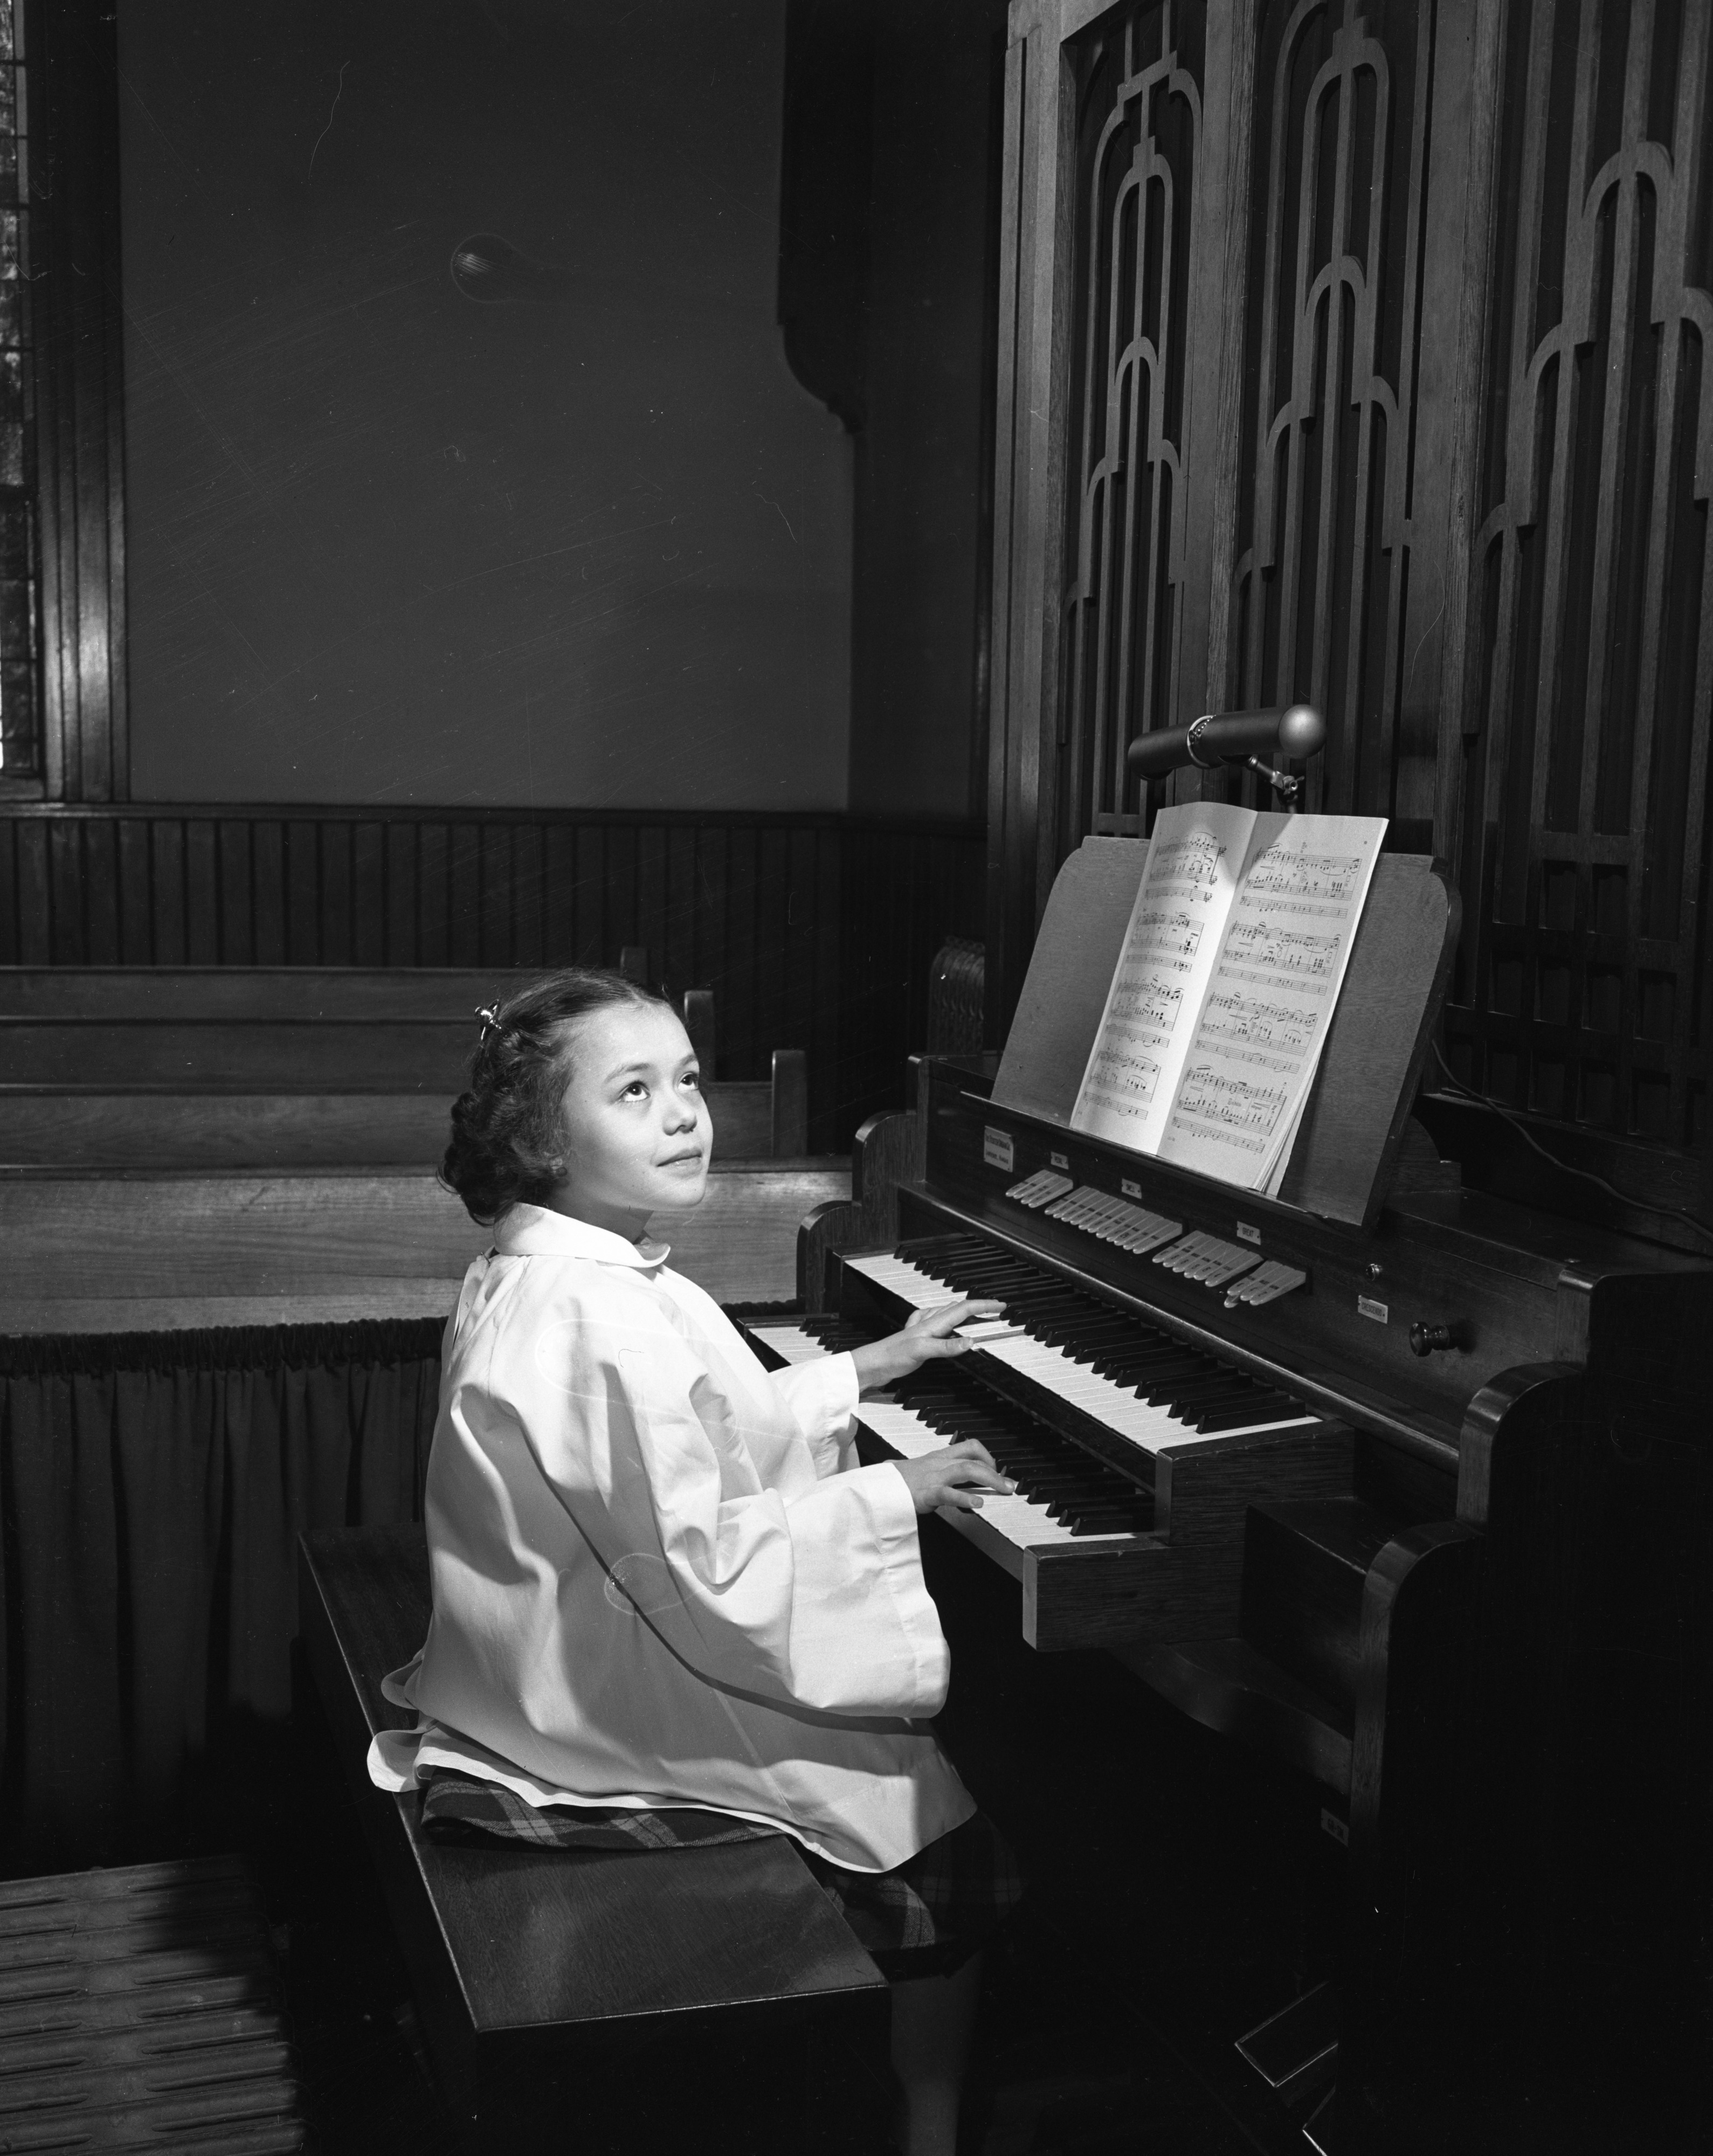 Elizabeth Ann Fawcett plays the organ at Trinity Lutheran Church, April 1950 image